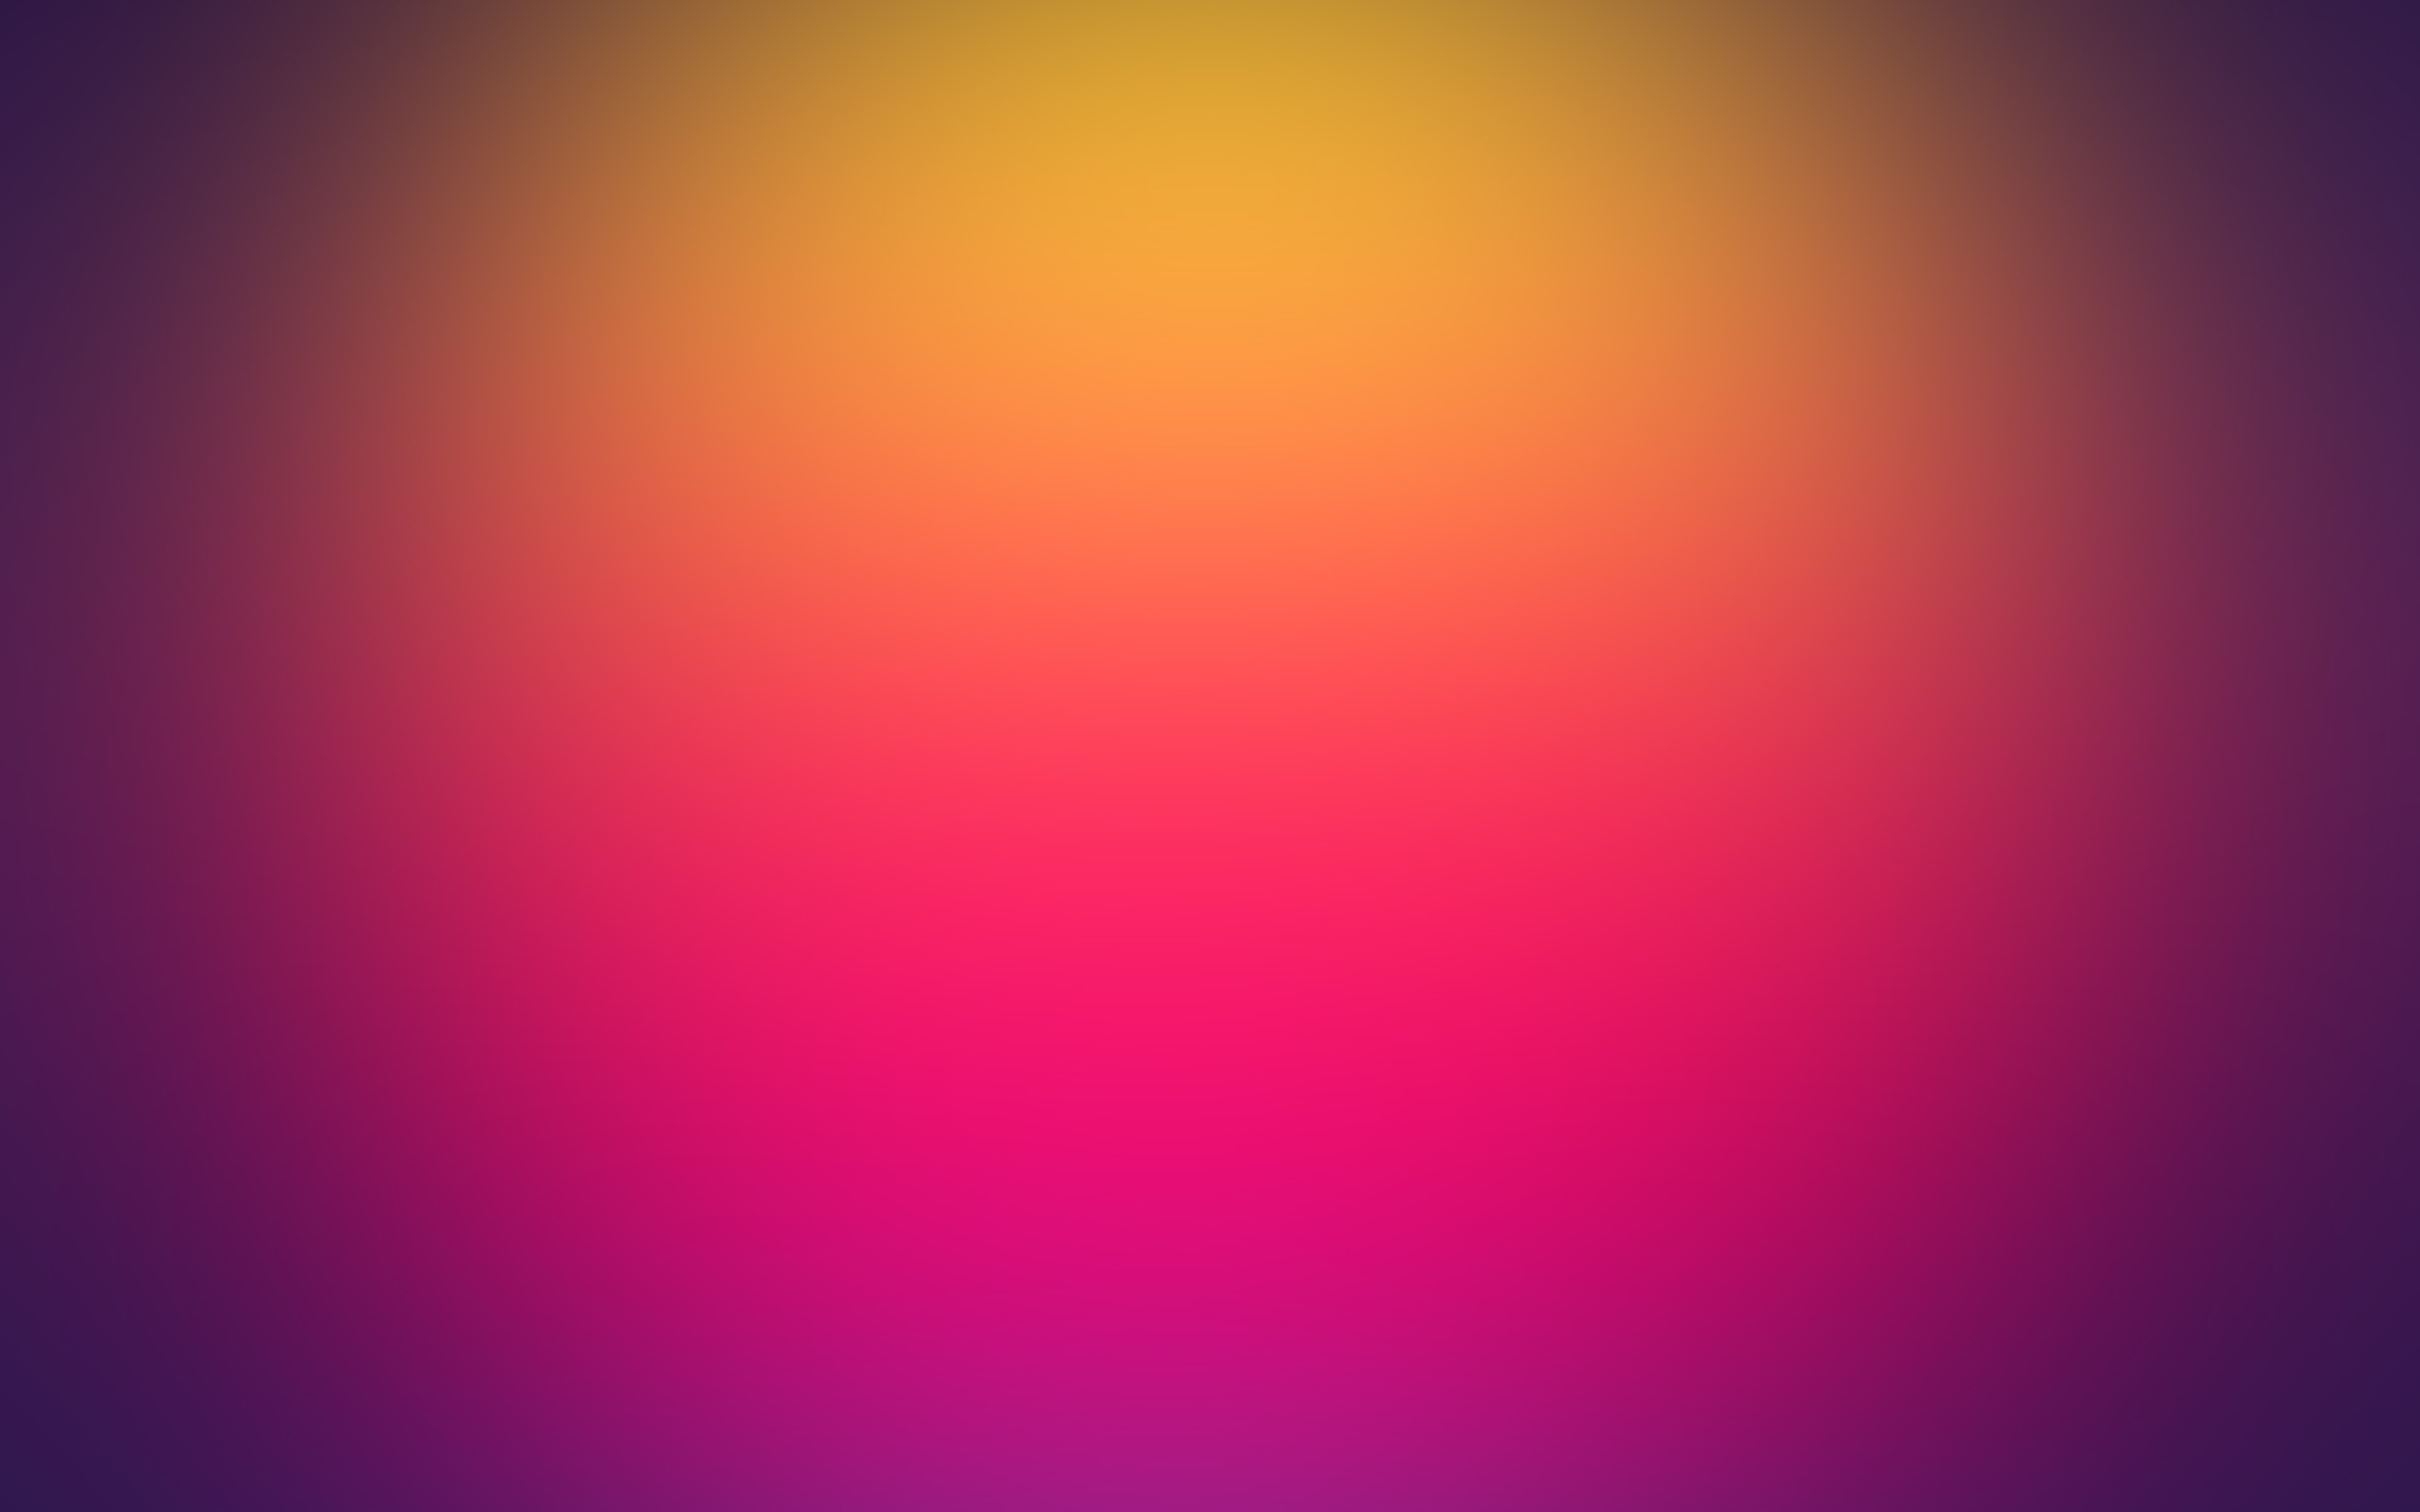 Fall Wallpaper For Iphone 5 Sj44 Fm84 Blur Purple Sun Gradation Blur Wallpaper